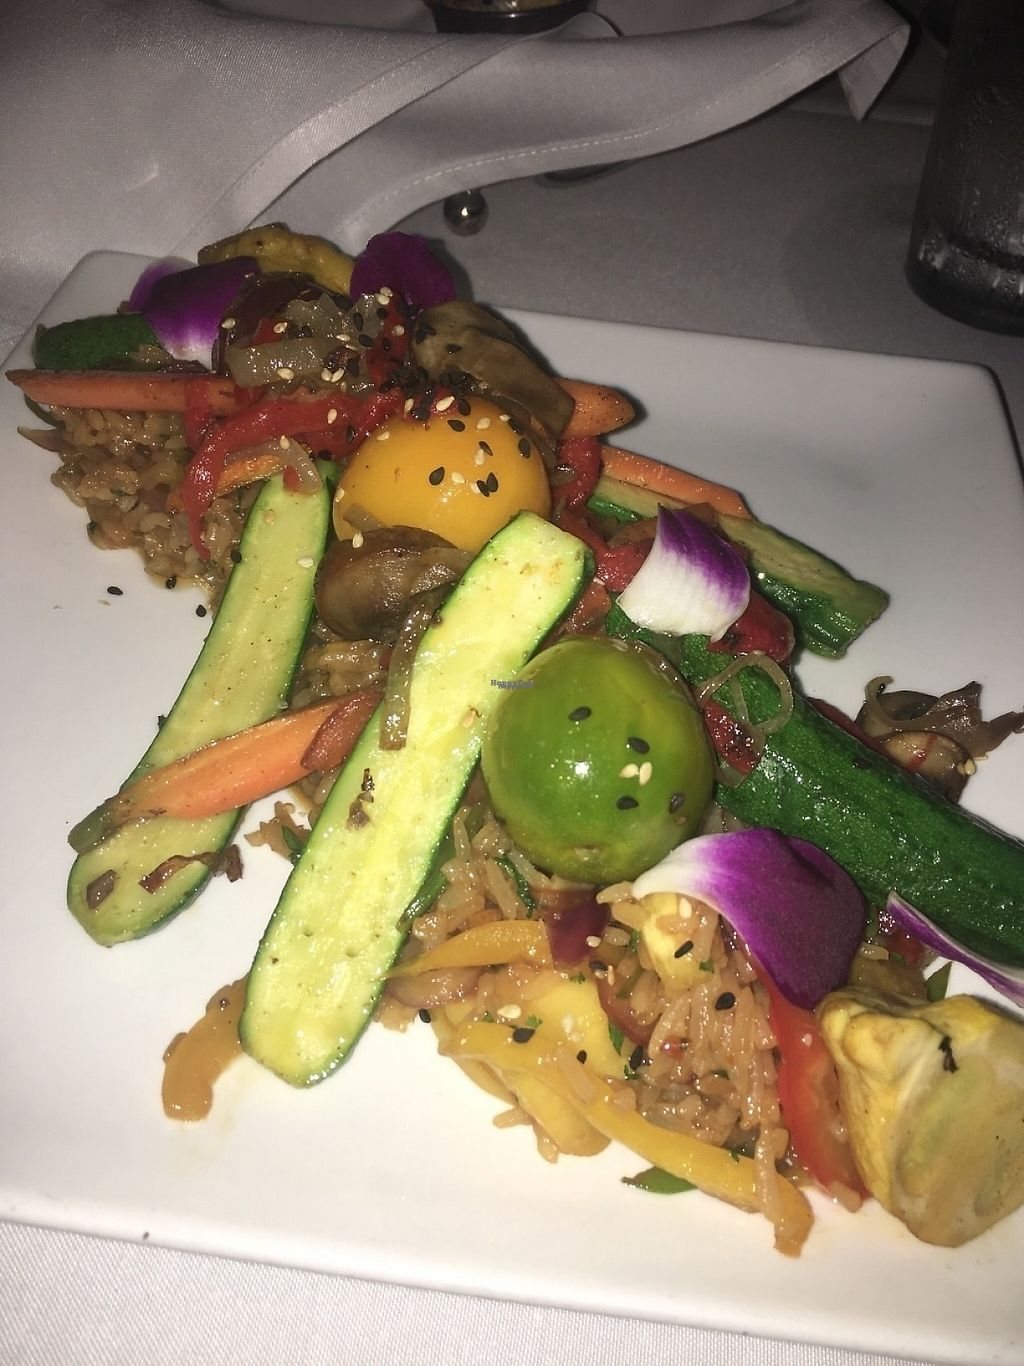 "Photo of Southernmost Beach Cafe  by <a href=""/members/profile/fozzboz"">fozzboz</a> <br/>Veggie stir fry - loved it <br/> March 28, 2017  - <a href='/contact/abuse/image/66569/241995'>Report</a>"